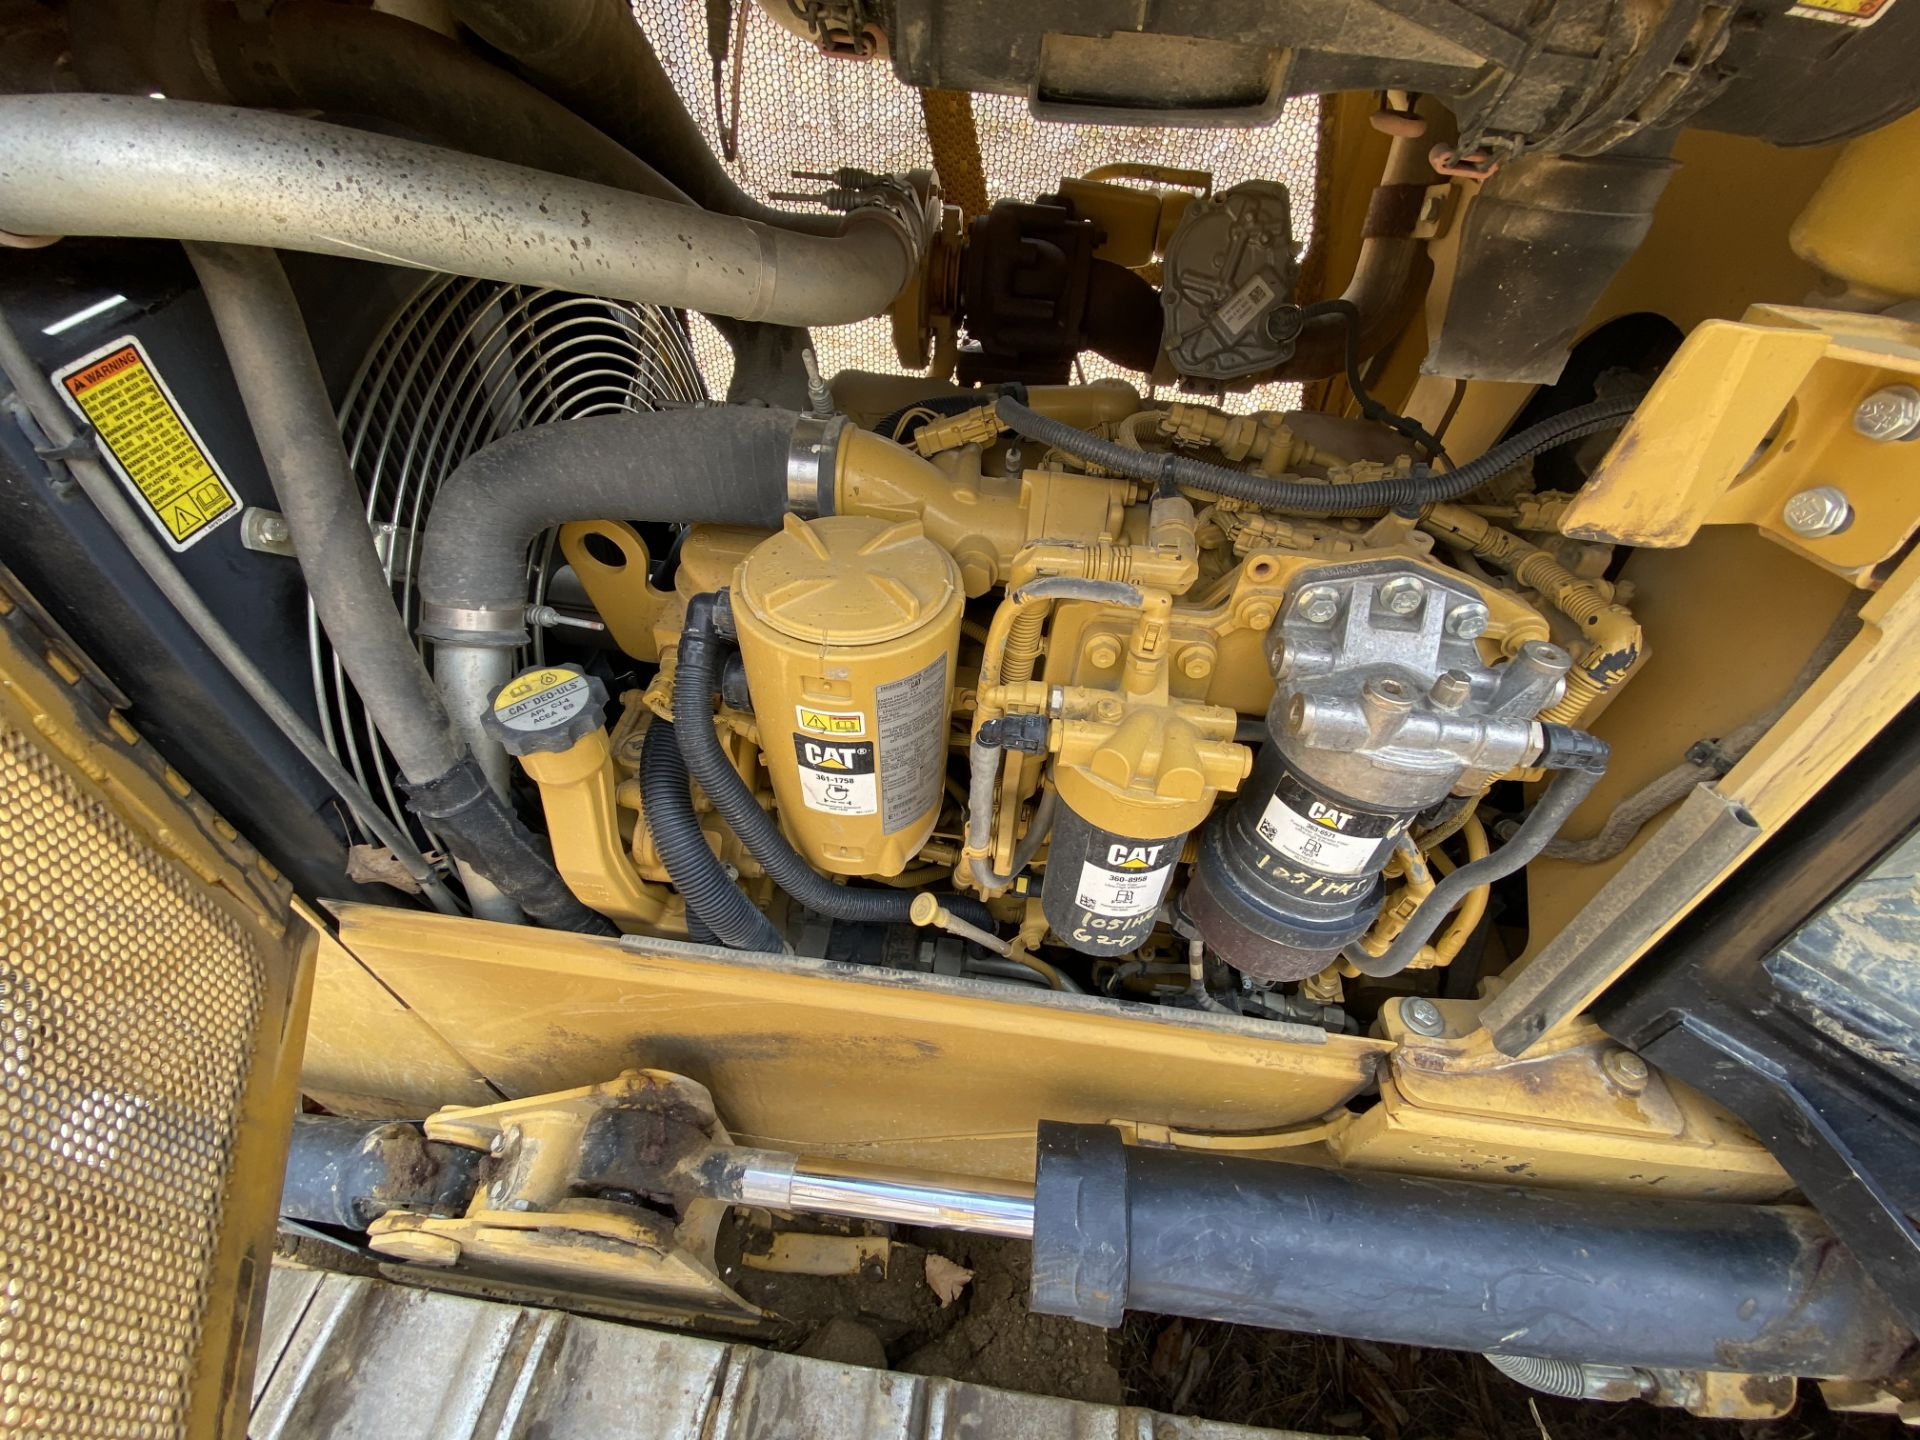 2014 Caterpillar Track Dozer #D3K2XL w/ 8' Plow, CAT 4.4 ACE RT Diesel Engine, HRS: 1926, PIN#: - Image 8 of 9